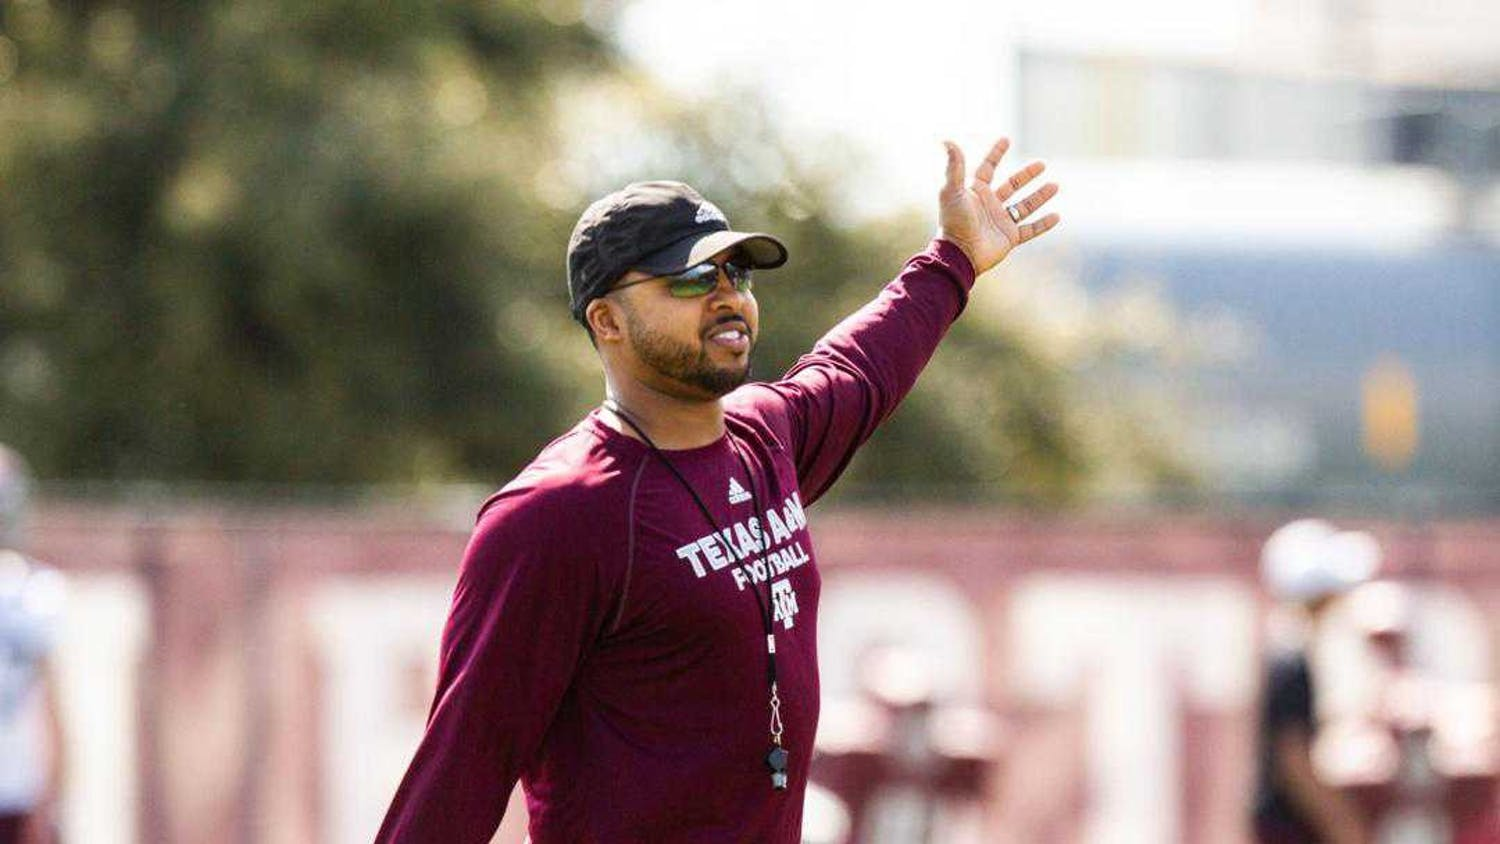 Maurice Linguist has been hired as head coach of the UB football team. Hailing from Dallas, Linguist has experience as a defensive assistant for Valdosta State, James Madison, Buffalo, Iowa State, Mississippi State, Minnesota, Texas A&M and in the NFL for the Dallas Cowboys.